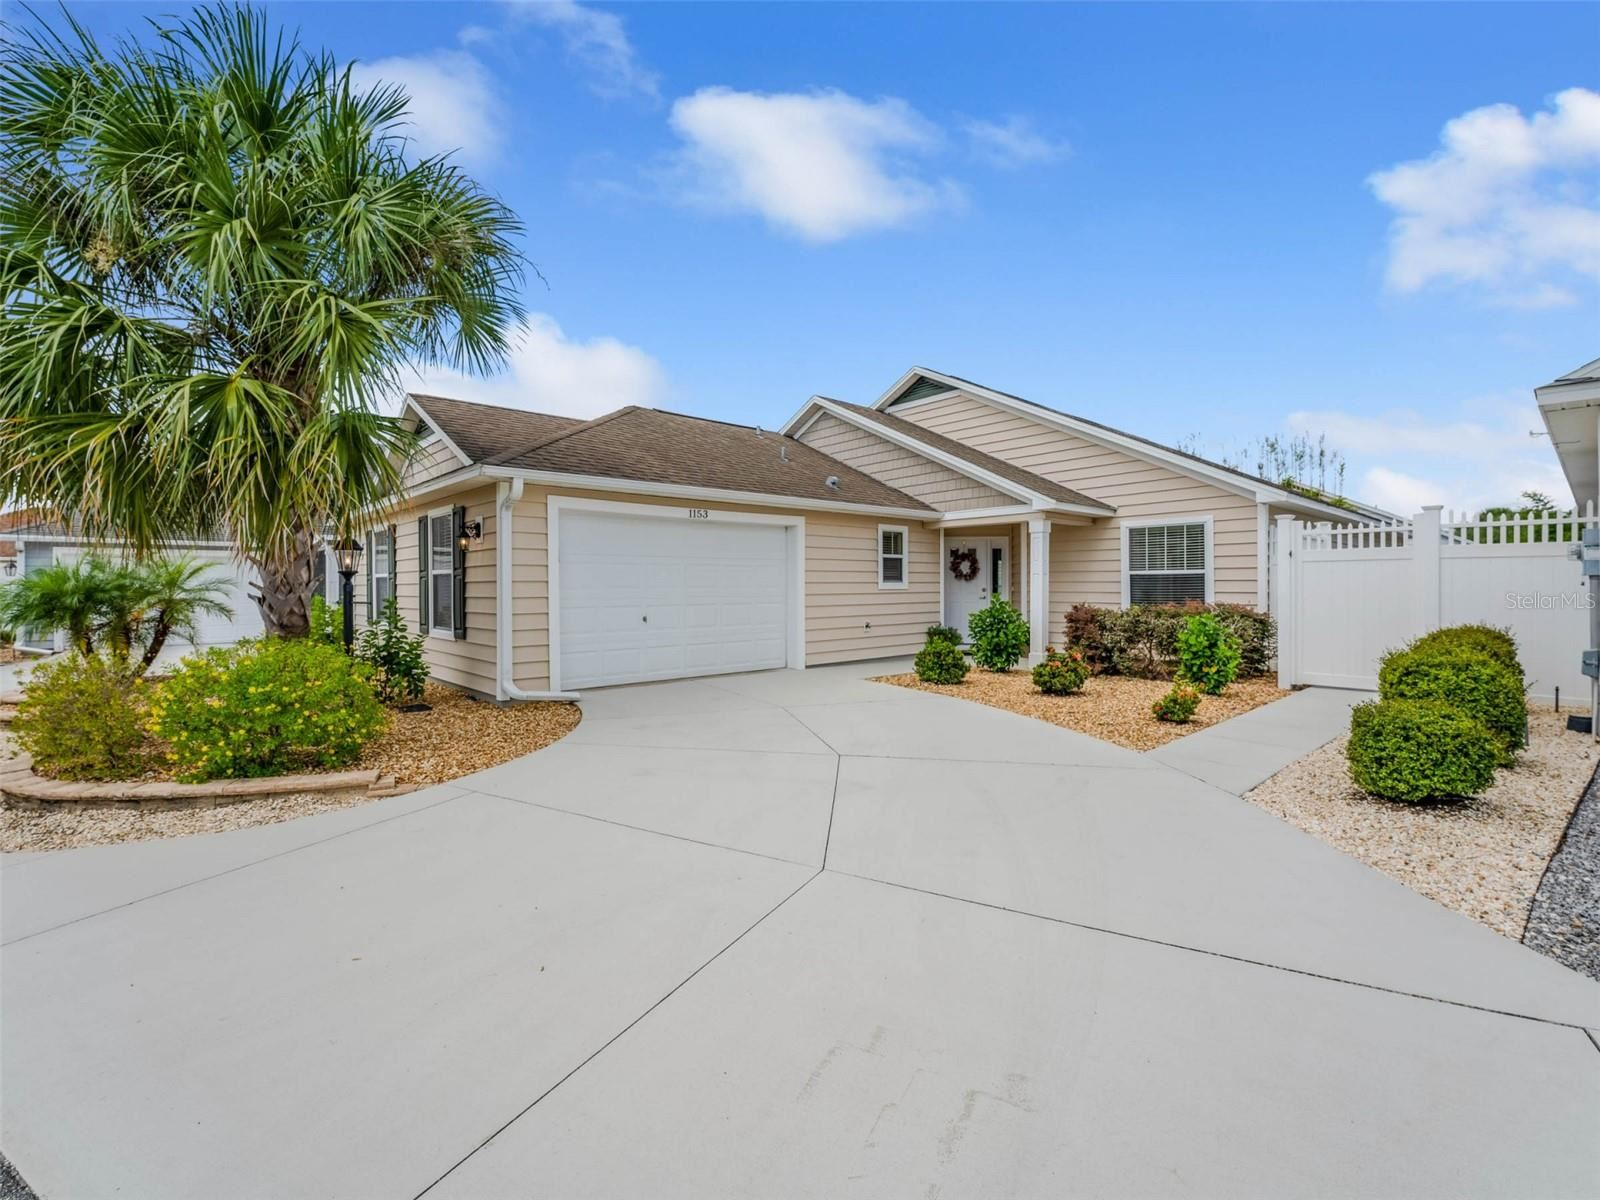 1153 OLD DOMINION ROAD, The Villages, FL 32162 - #: A4509574